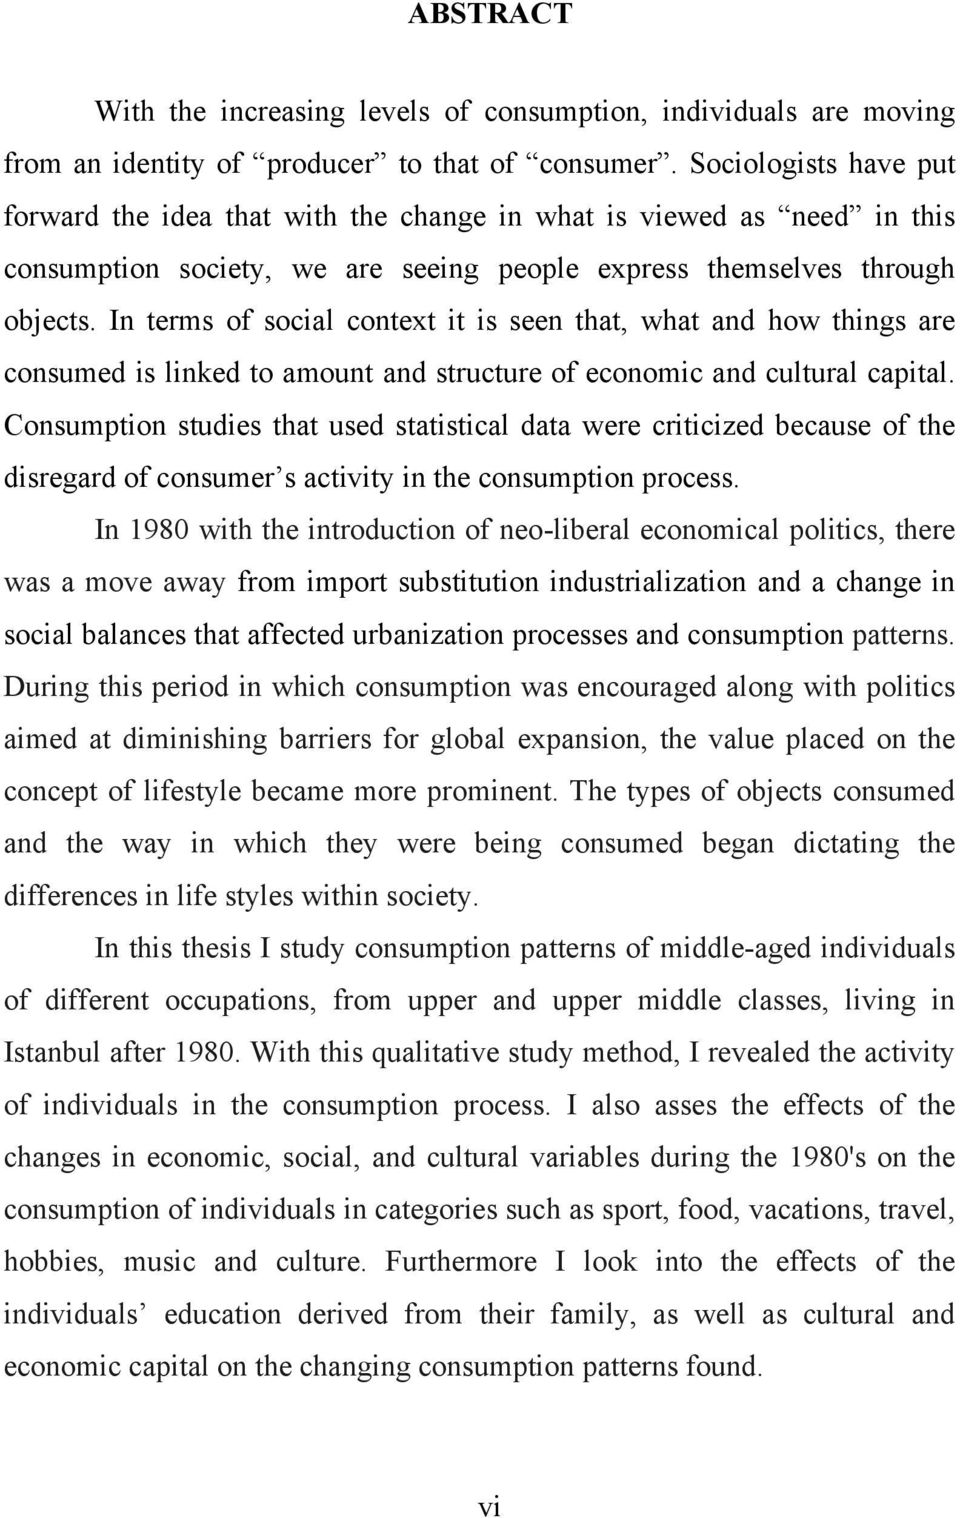 In terms of social context it is seen that, what and how things are consumed is linked to amount and structure of economic and cultural capital.